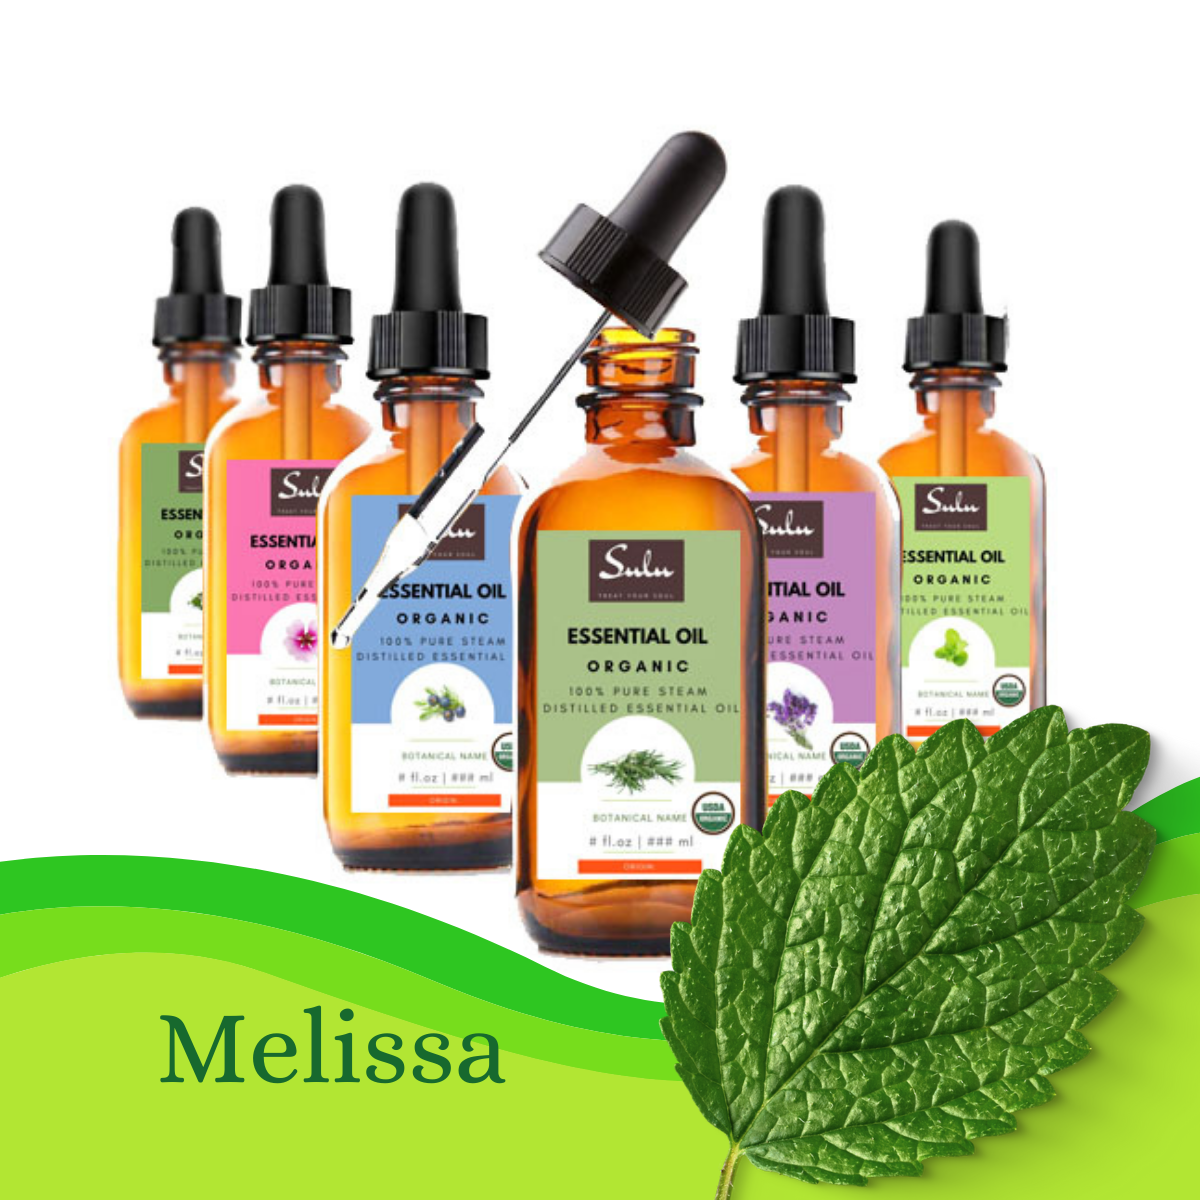 100% Pure and Natural Therapeutic Grade Melissa Essential Oil